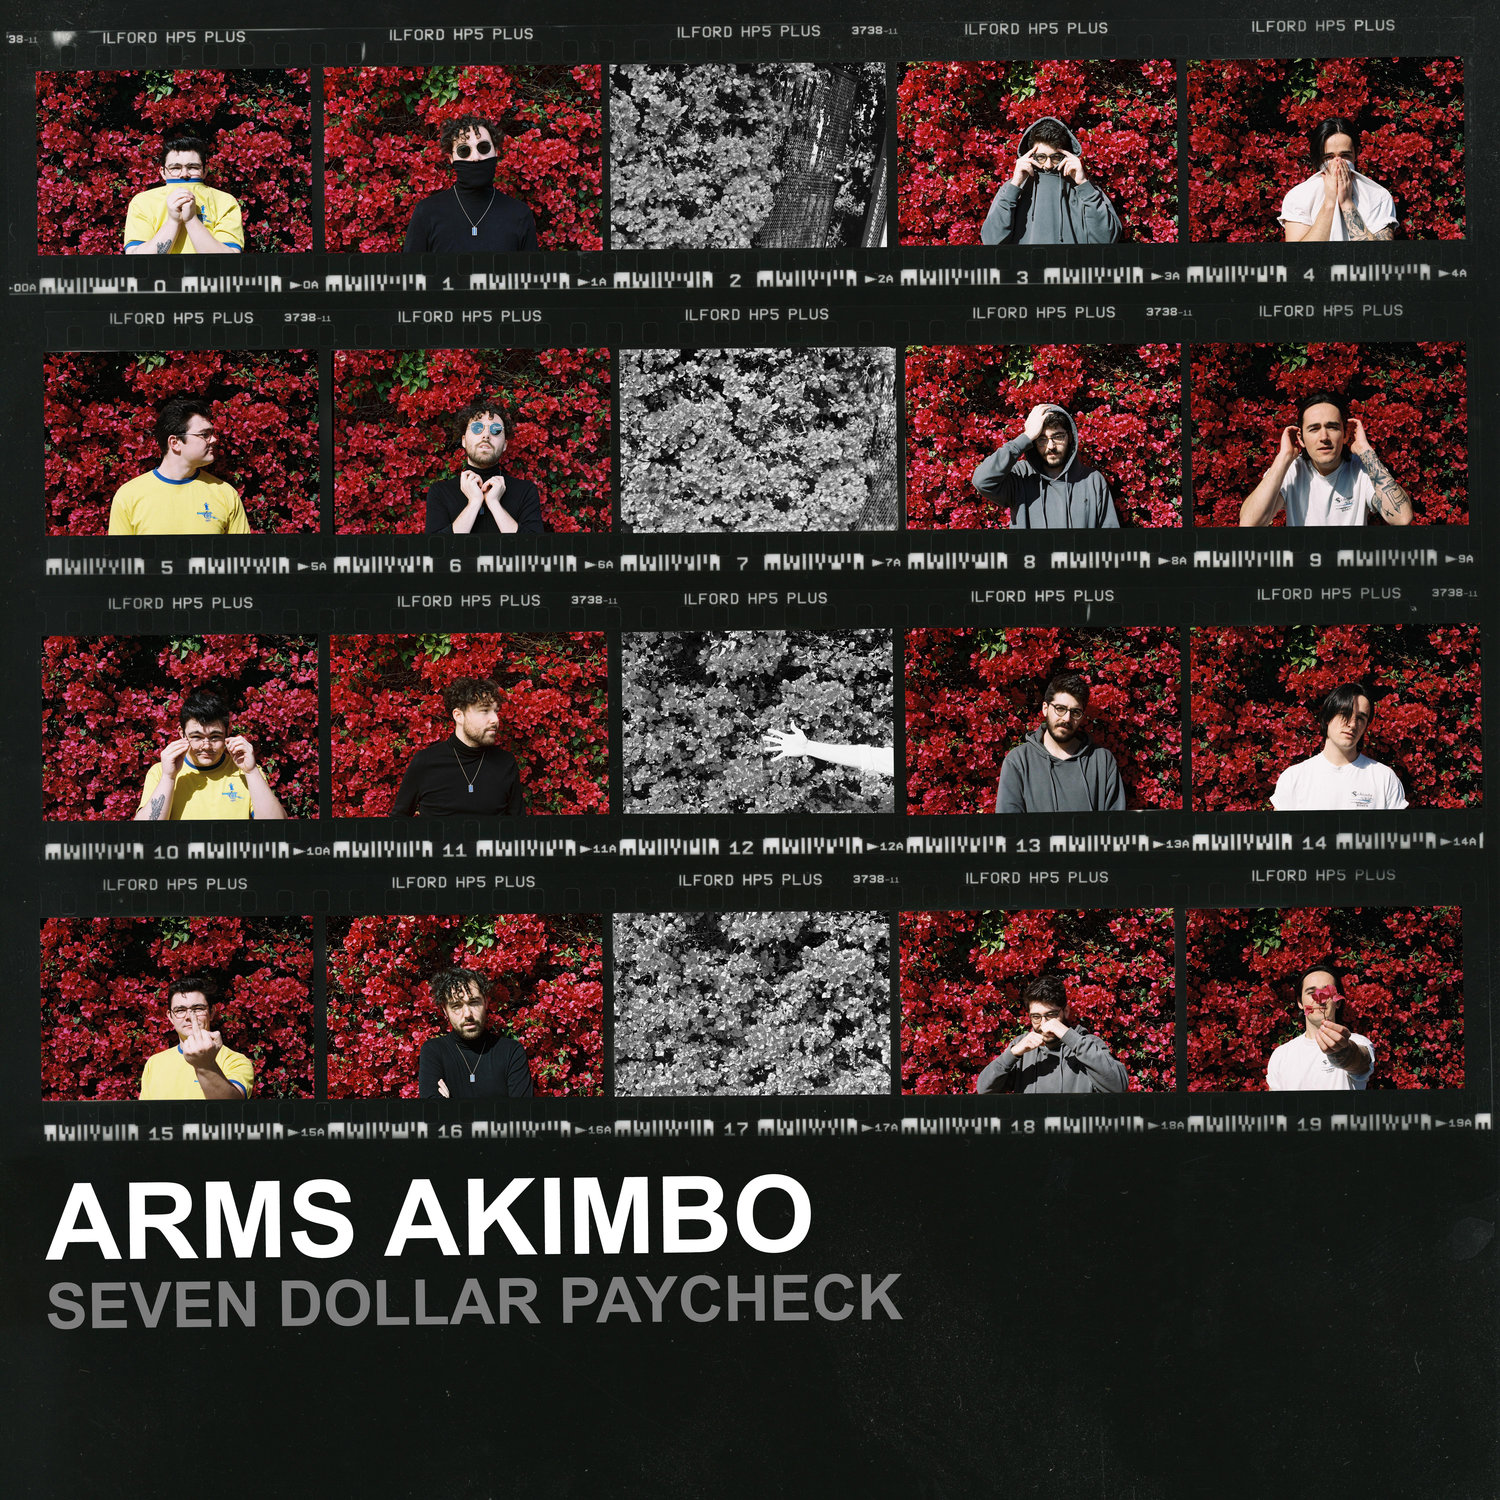 arms akimbo seven dollar paycheck album cover